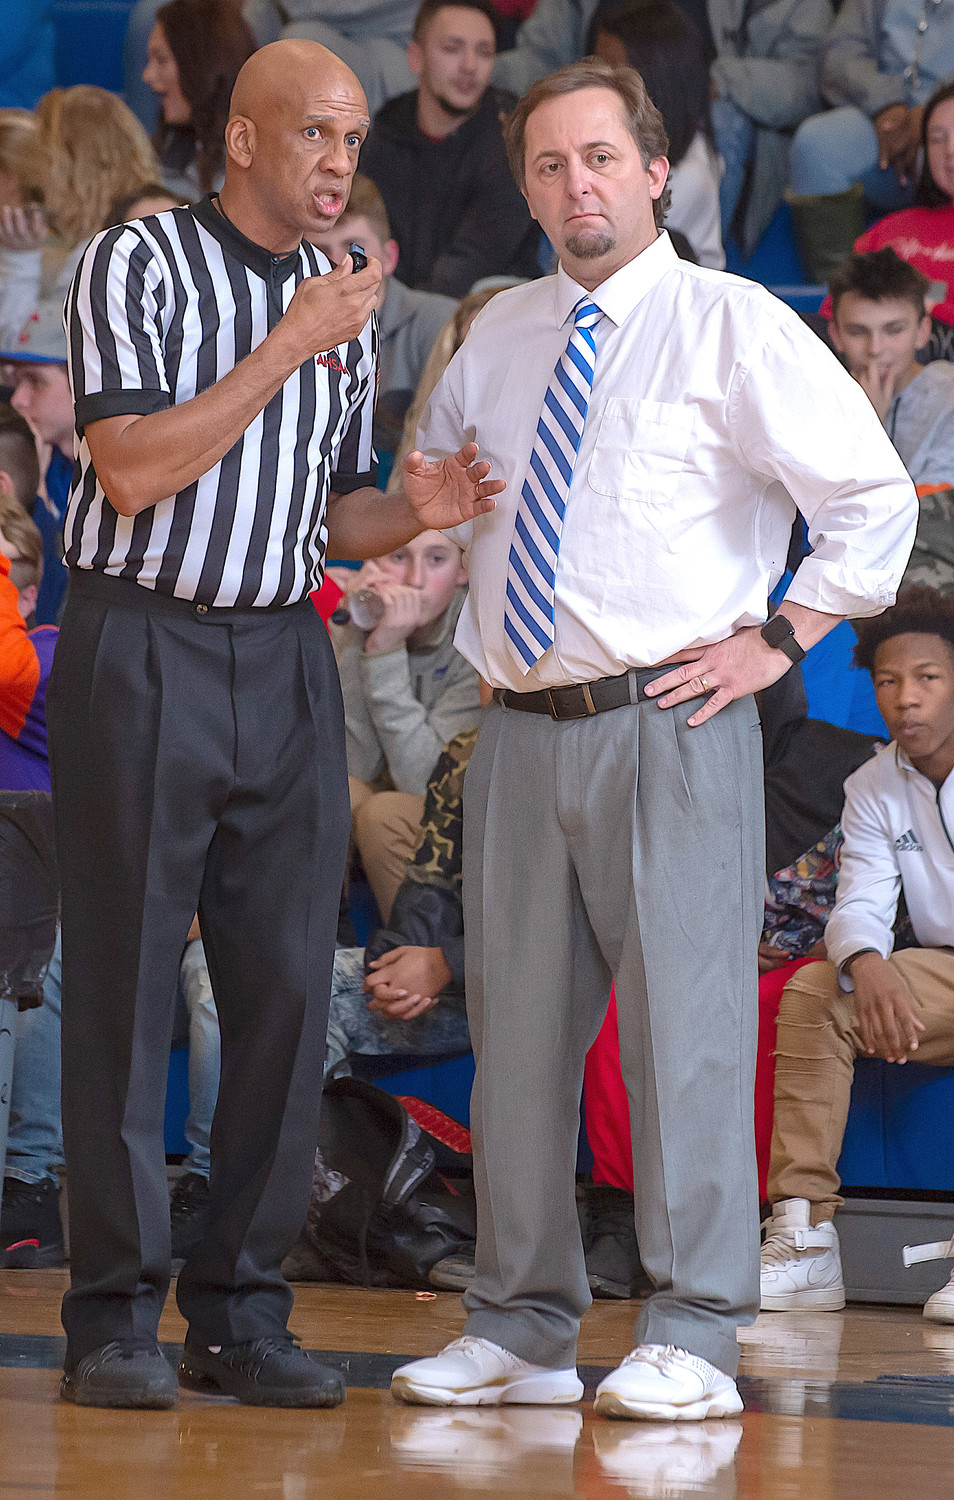 Former Cordova basketball coach Heath Burns directs his team during a game last season. Burns, who led the Blue Devils to a state championship in 2017-18, is now the head boys basketball coach at Hueytown High School.